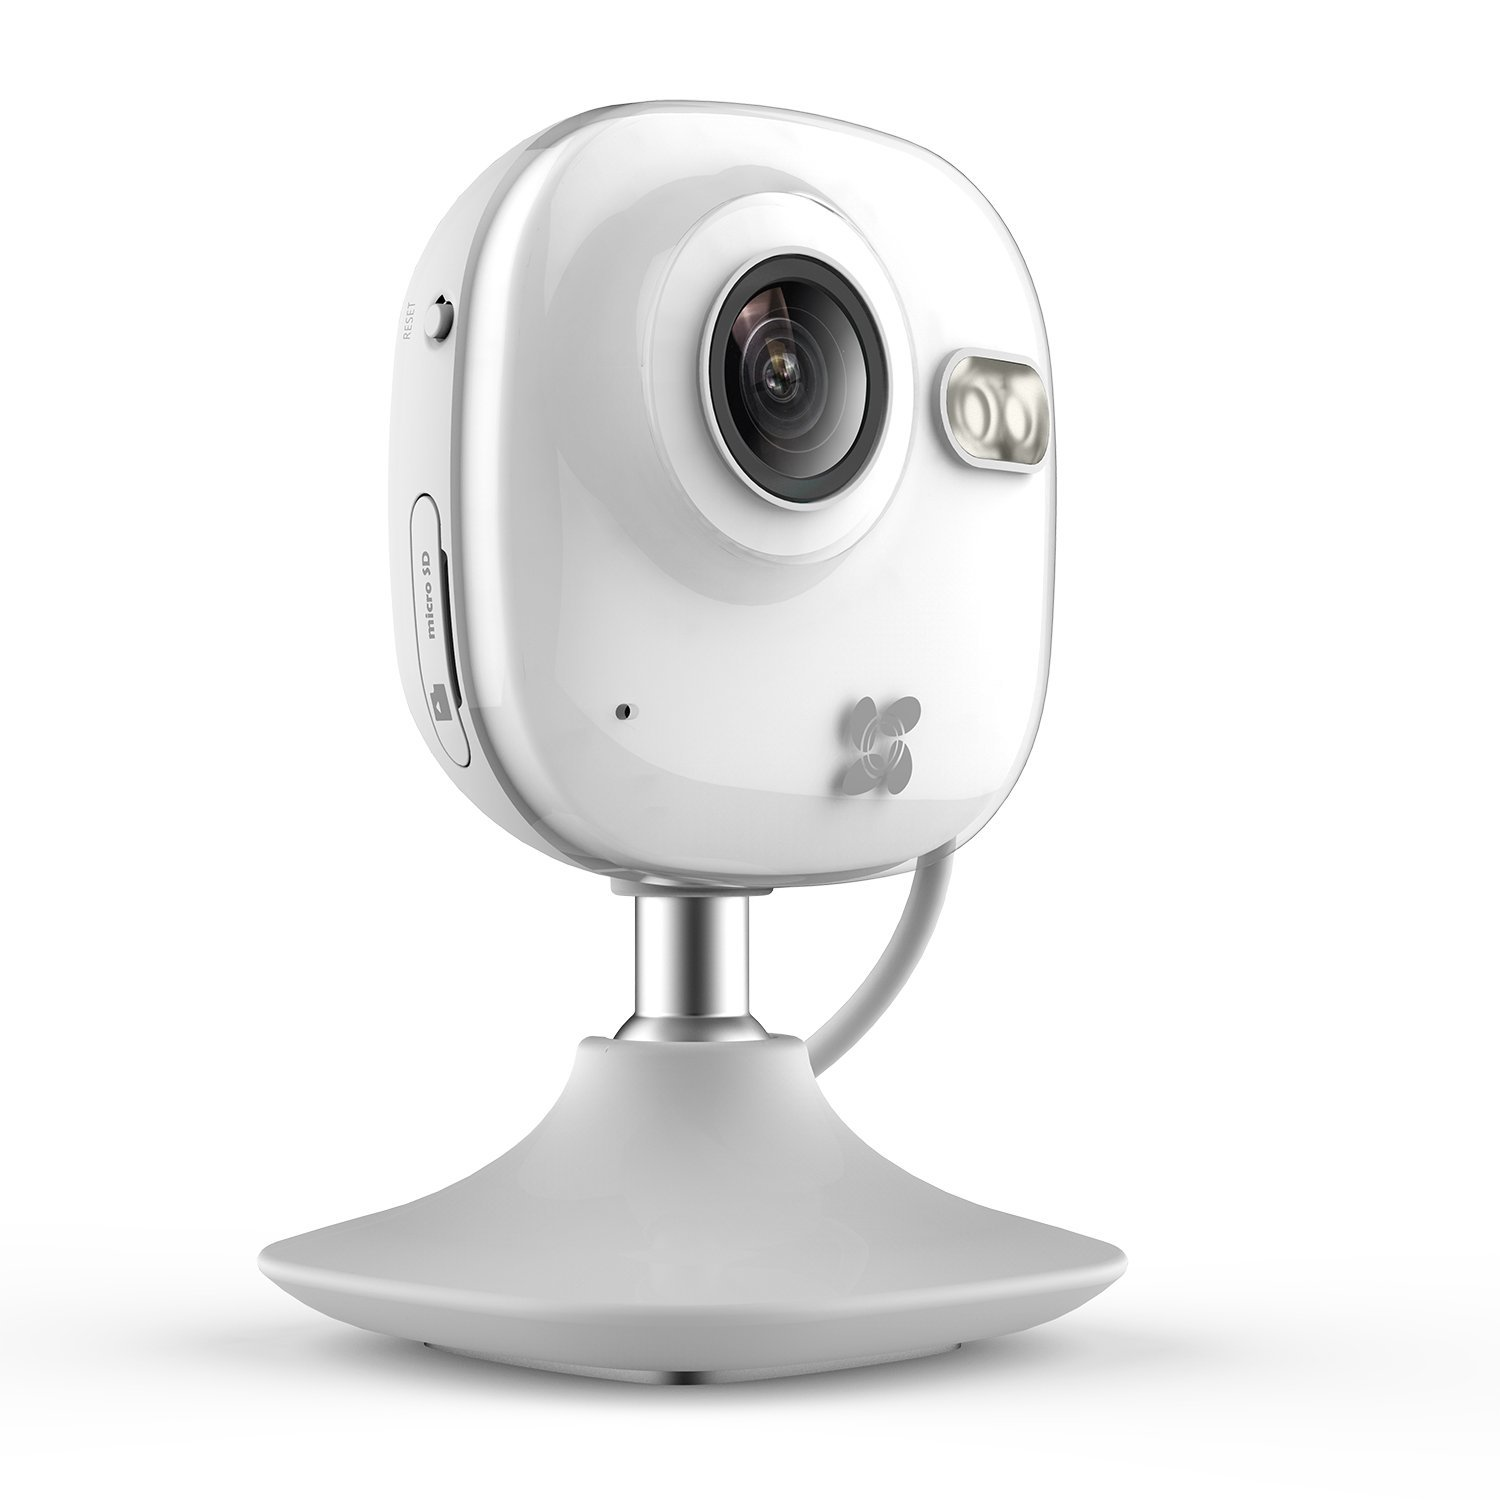 EZVIZ Mini HD 720p WiFi Home Security Camera with Motion Detection